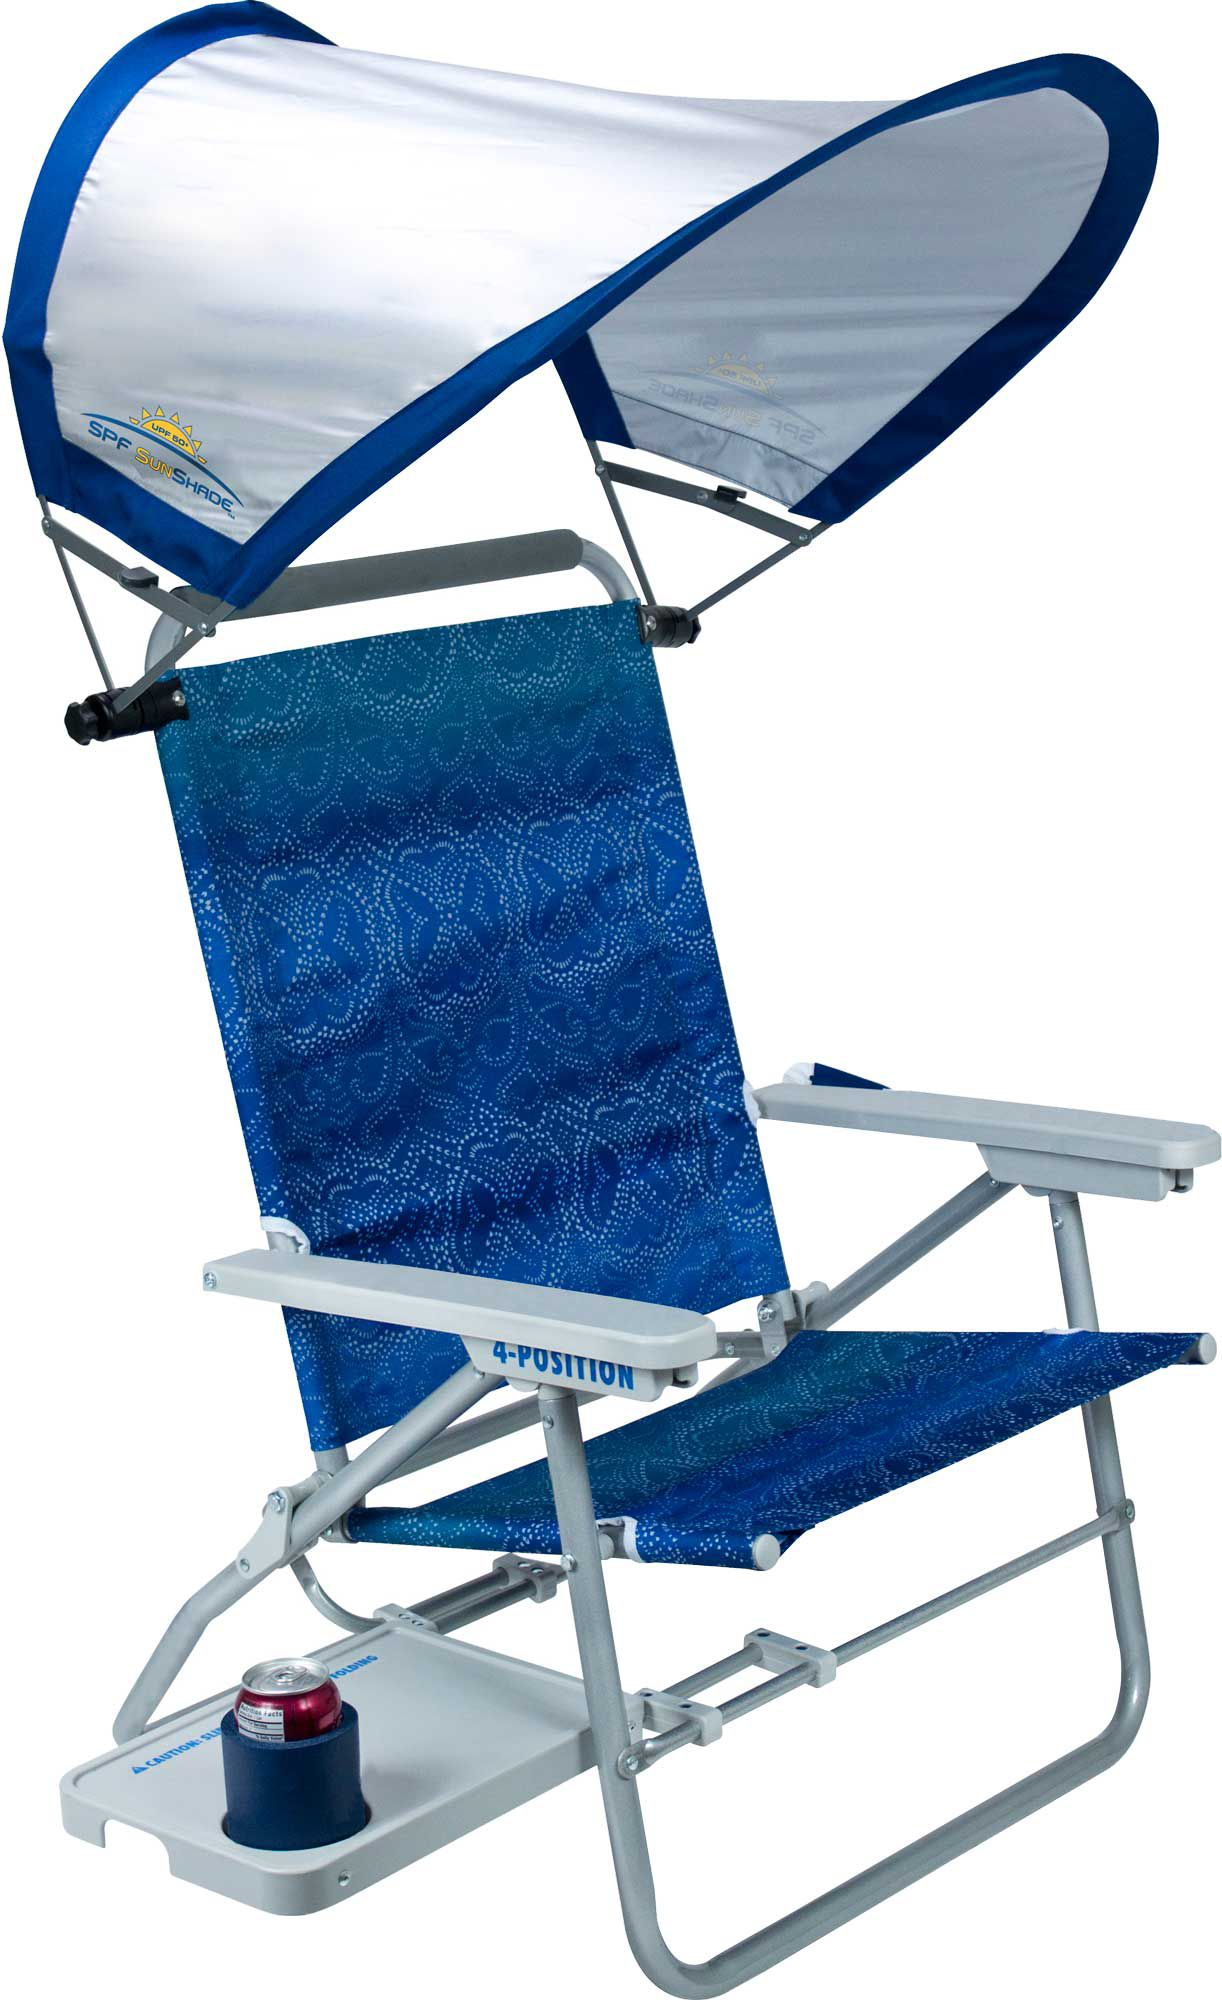 camping chairs with canopy floor mats for office shade coverage best price guarantee at dick s product image gci waterside big surf beach chair sunshade